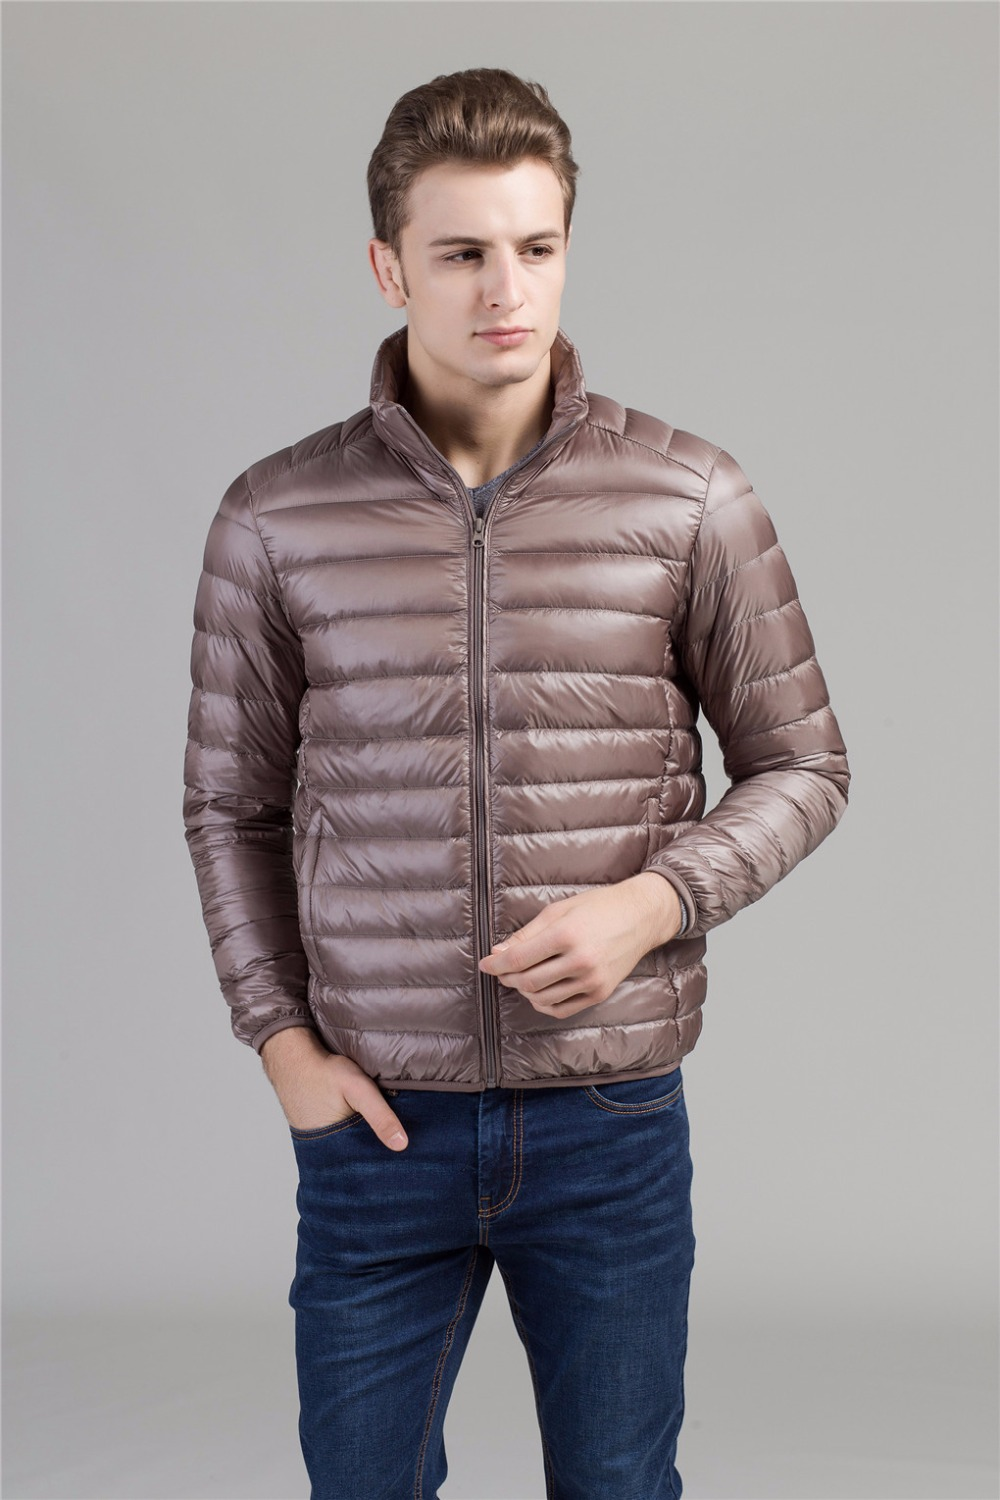 Shanghai Story Autumn Winter Duck Down Jacket, Ultra Light Thin plus size winter jacket for men Fashion mens Outerwear coat